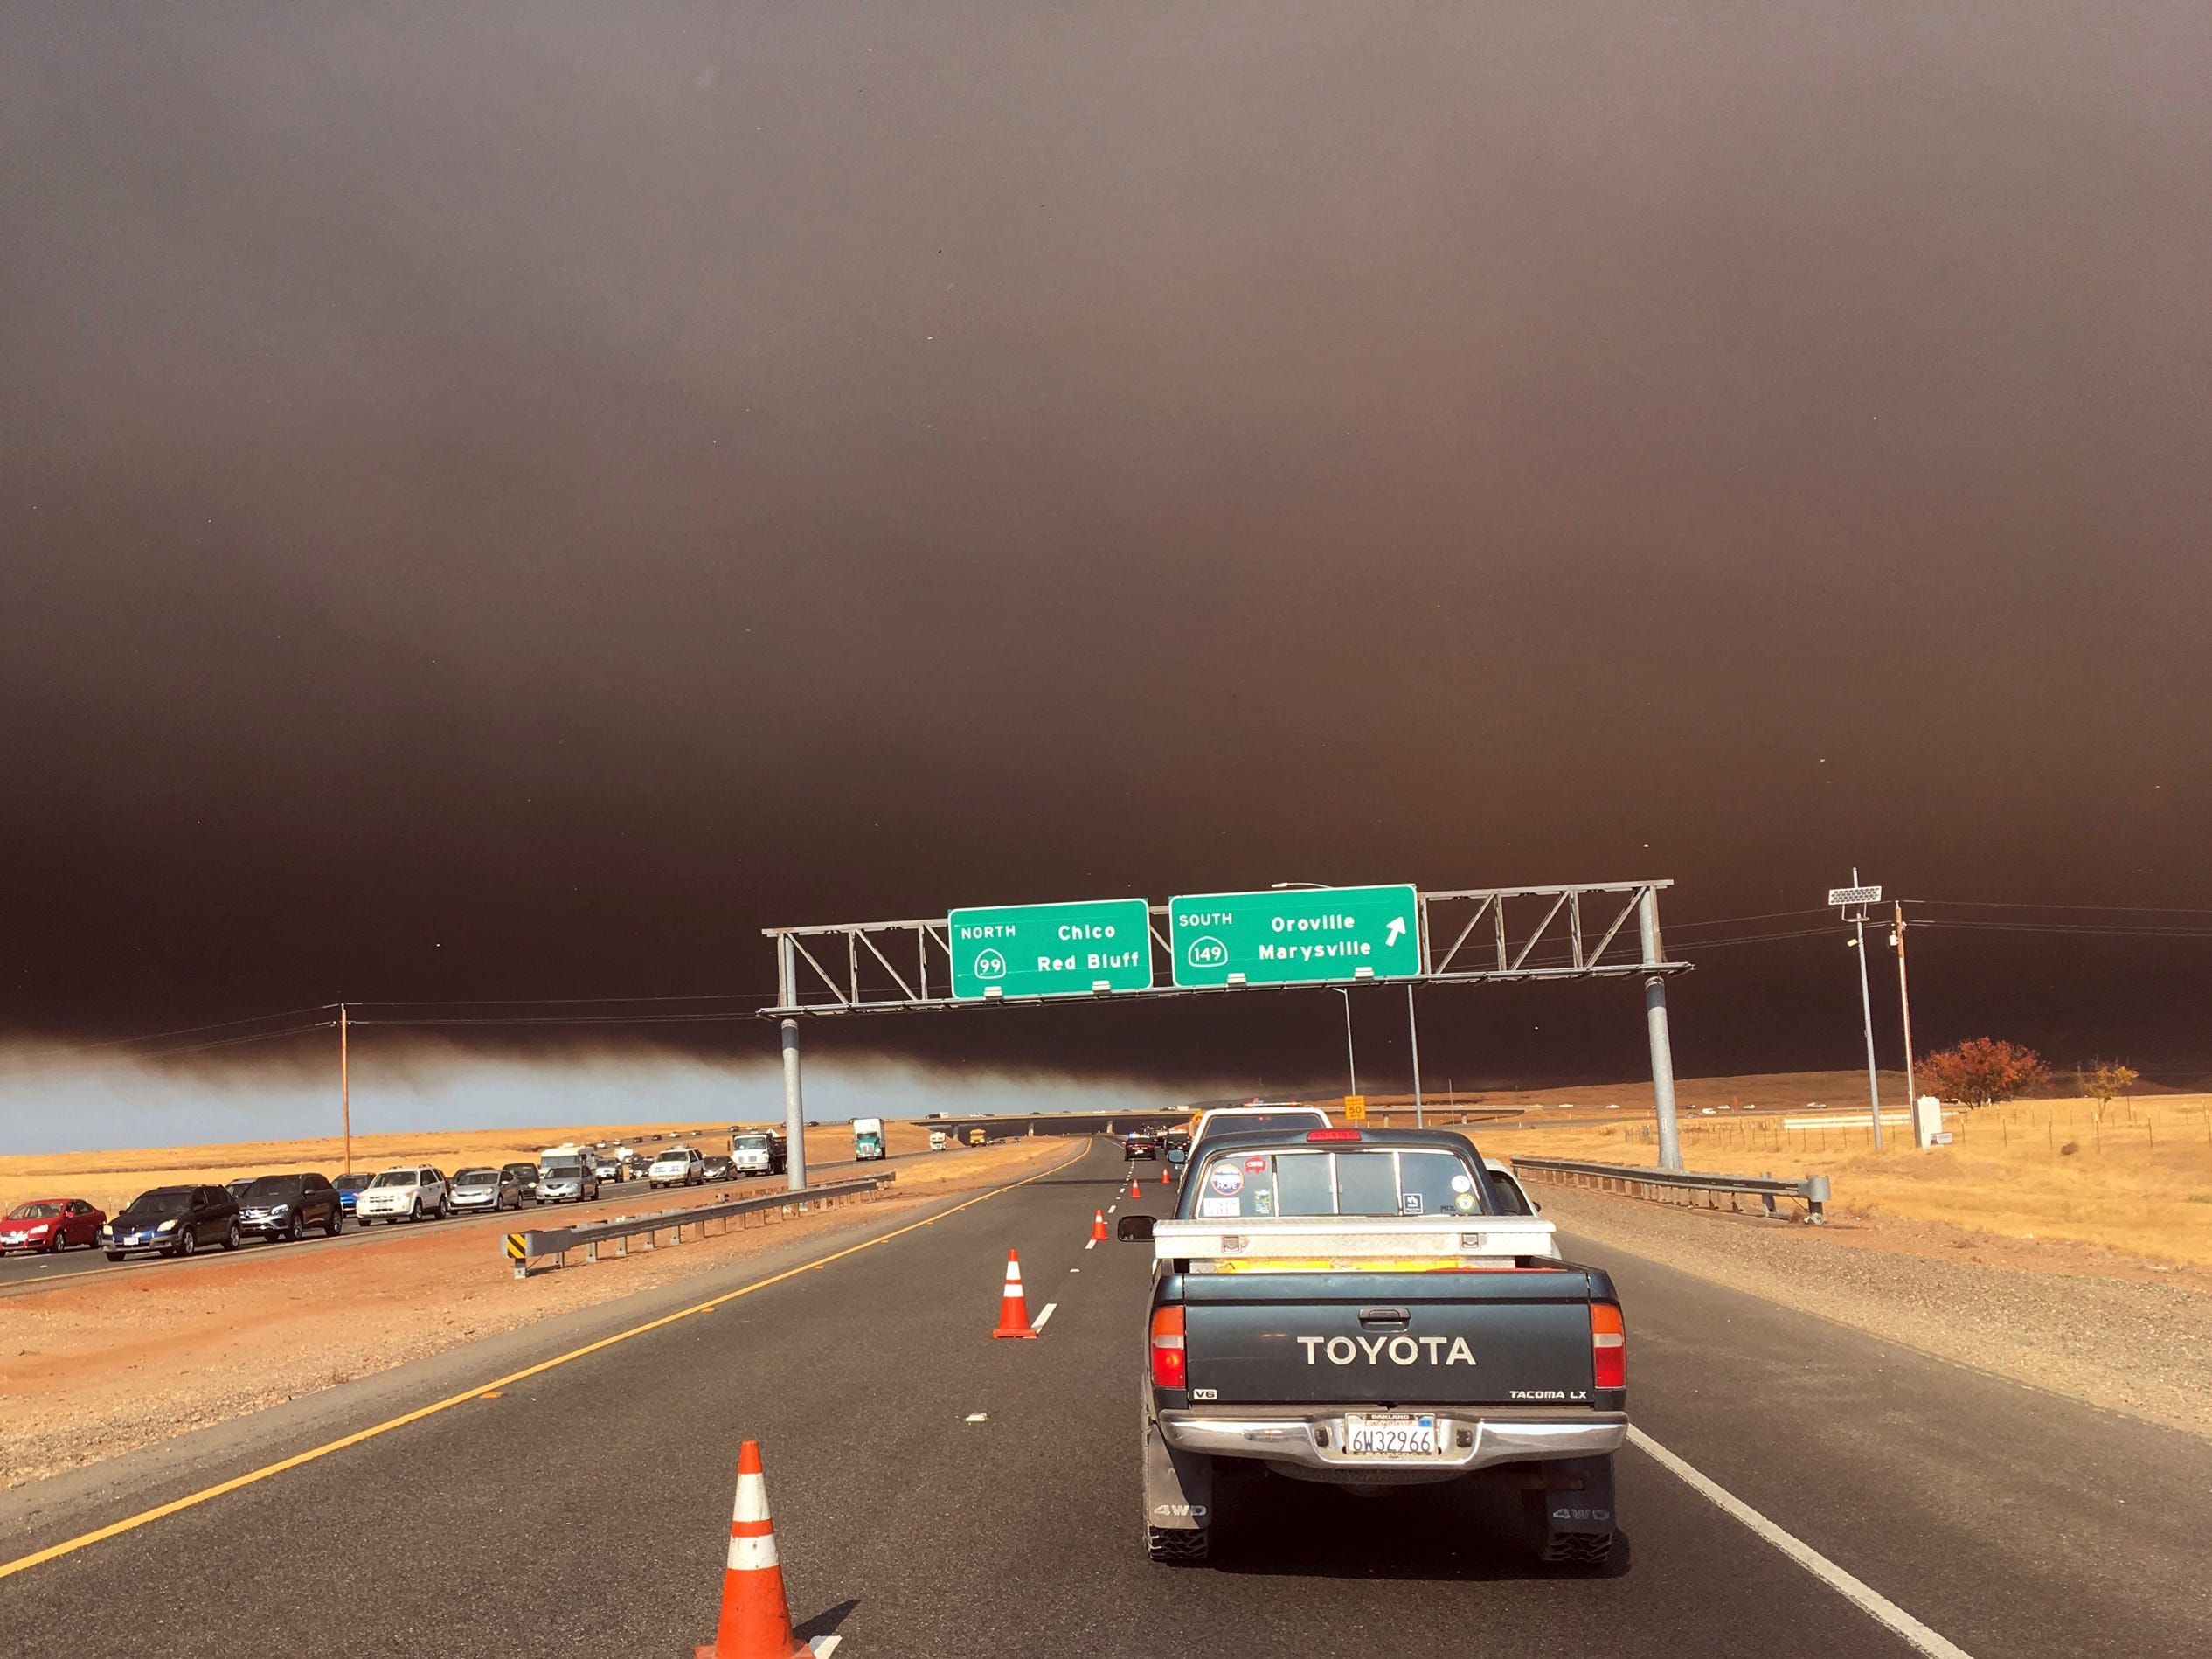 Smoke from the Camp Fire, burning in the Feather River Canyon near Paradise, Calif., darkens the sky as seen from Highway 99 near Marysville, Calif. on Nov. 8, 2018.